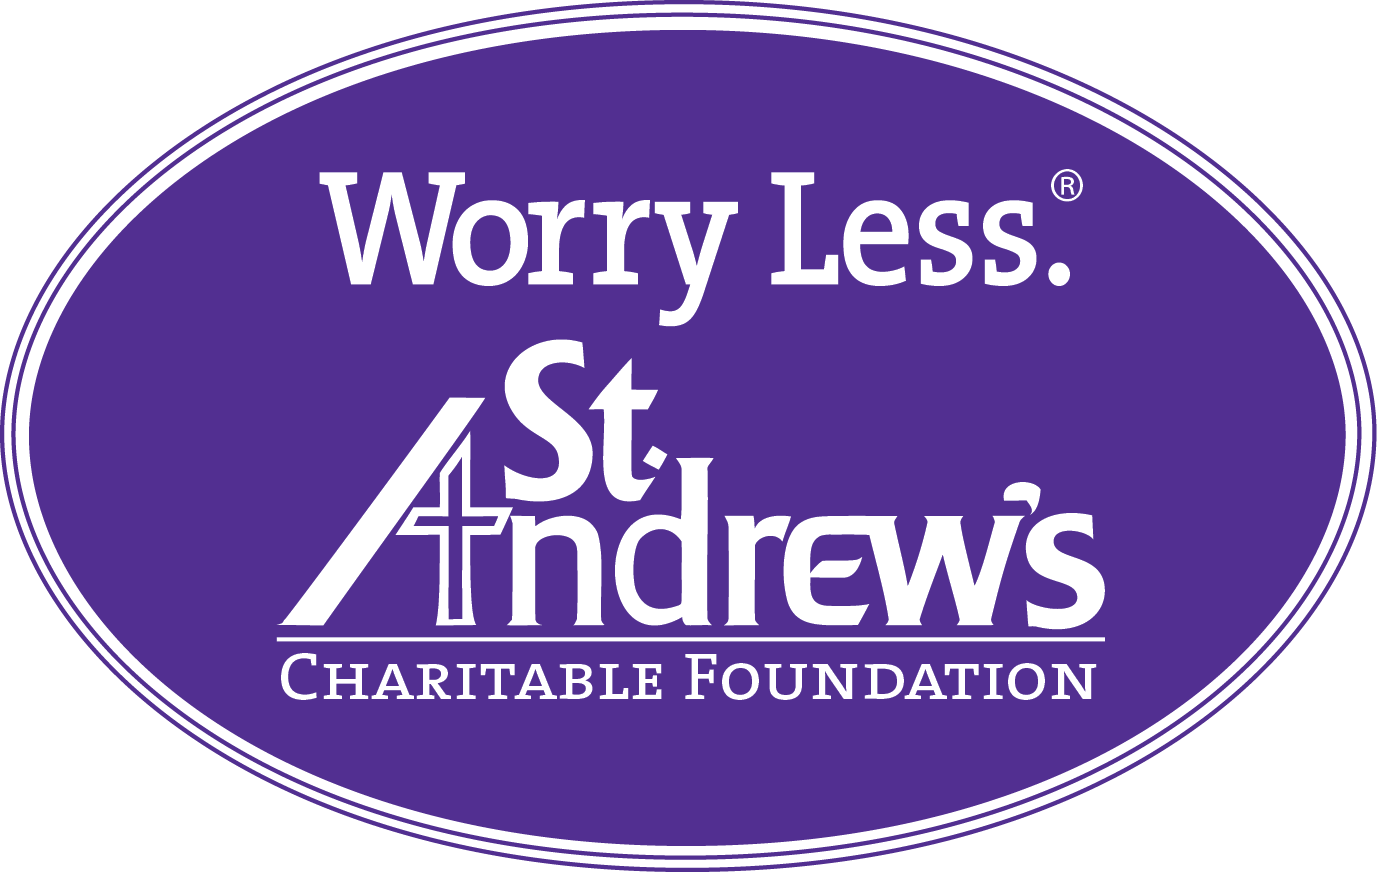 St. Andrew's Charitable Foundation